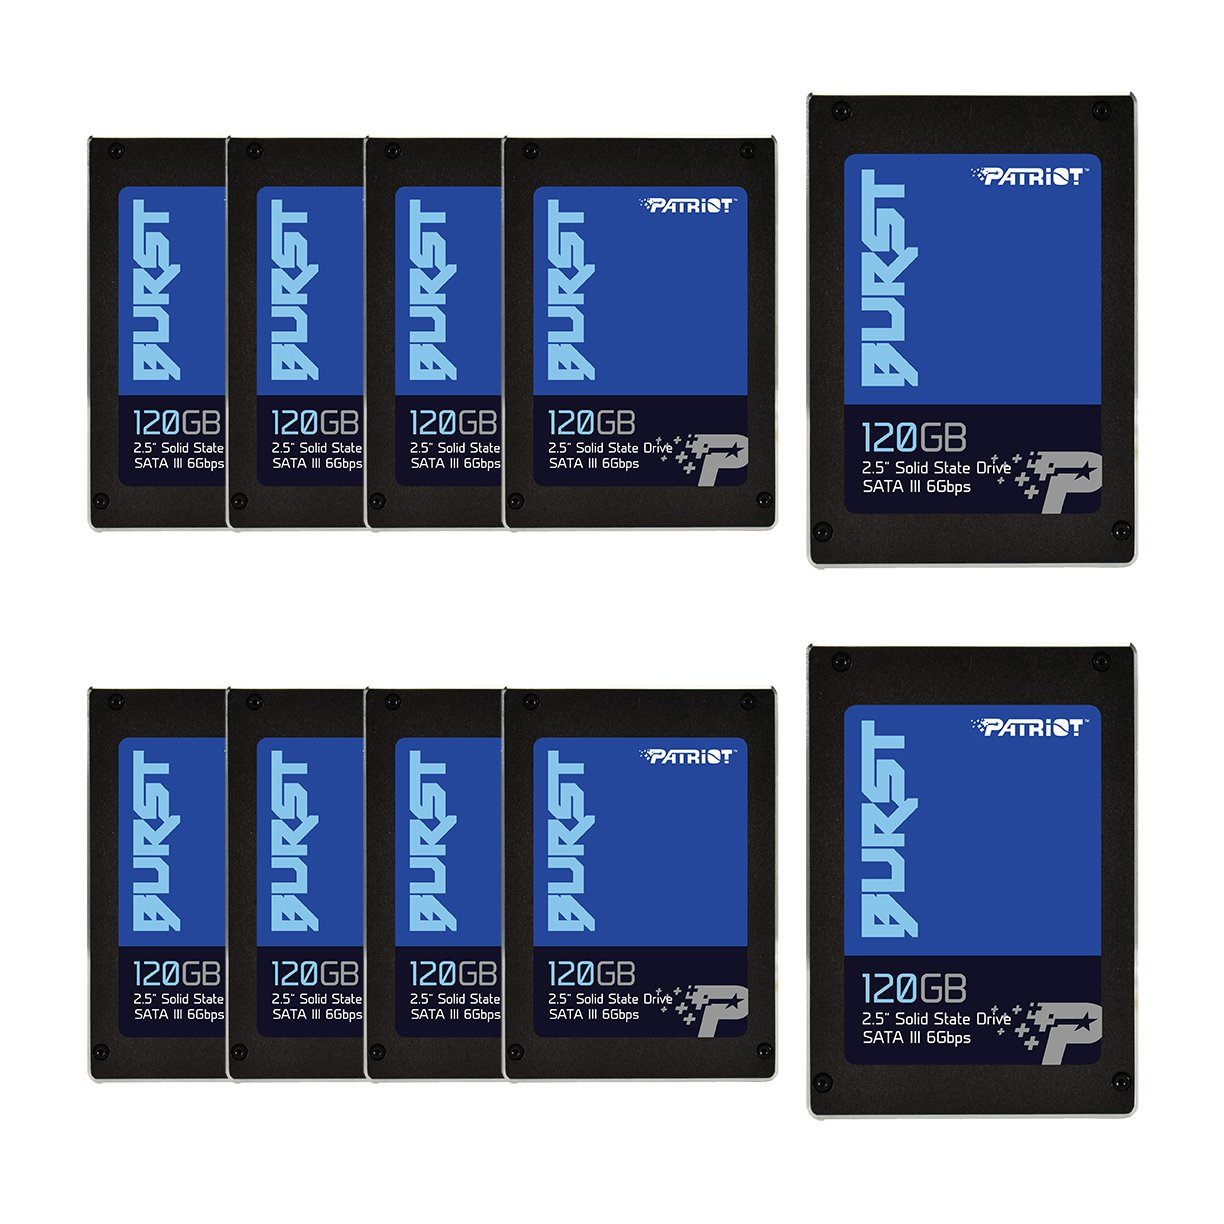 Patriot Memory Burst SSD 120GB SATA III Internal Solid State Drive 2.5'' - Retail Package 10 Unit Pack